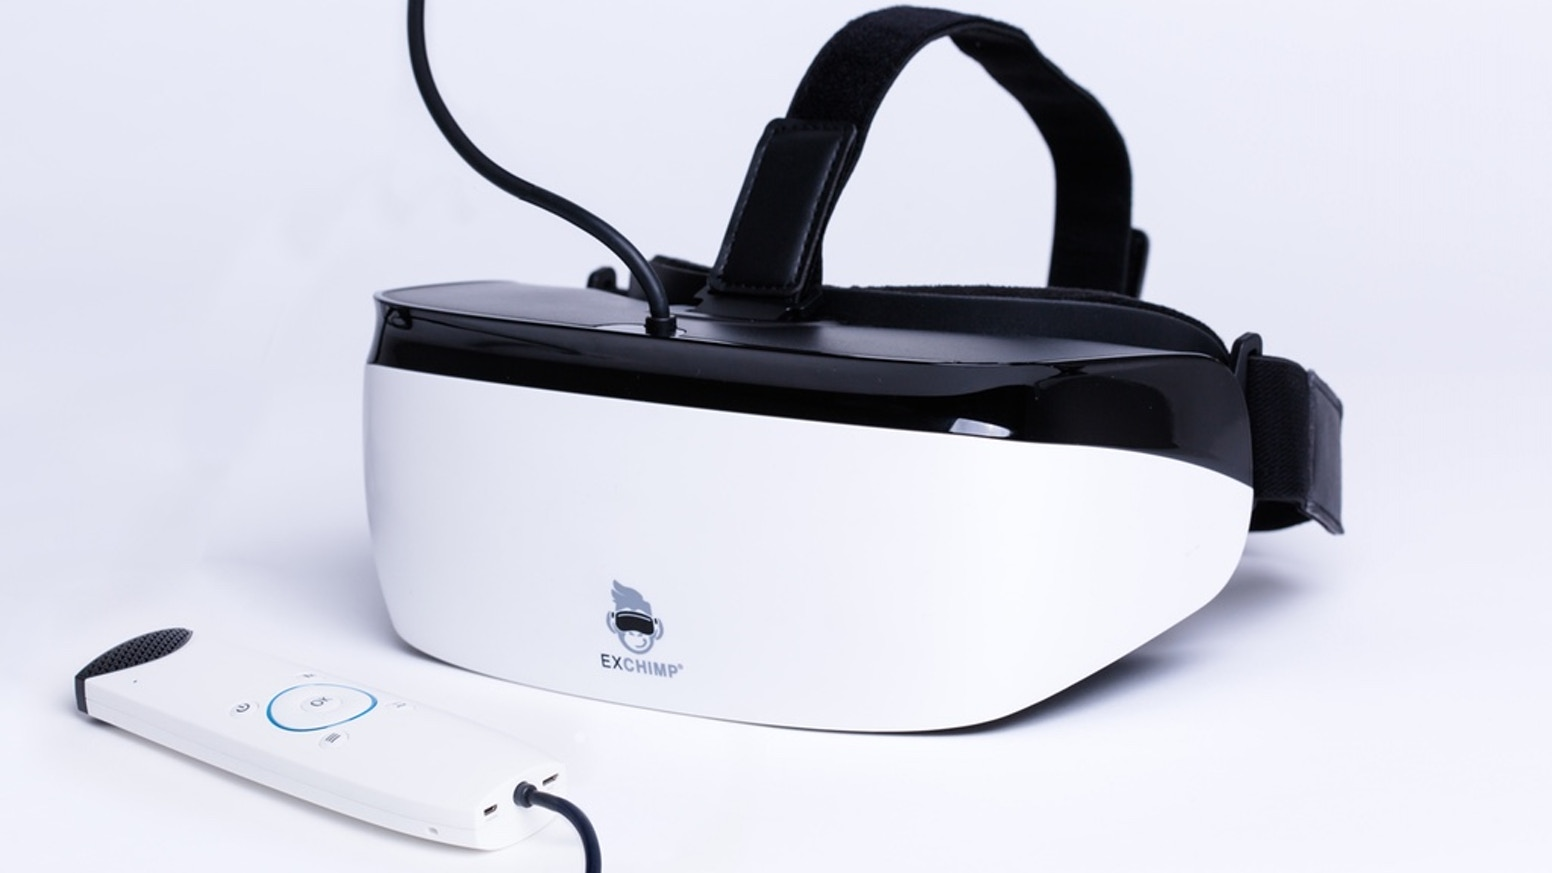 Bridging the gap between low-cost and high-end virtual reality headset with QHD display and hand held controller.